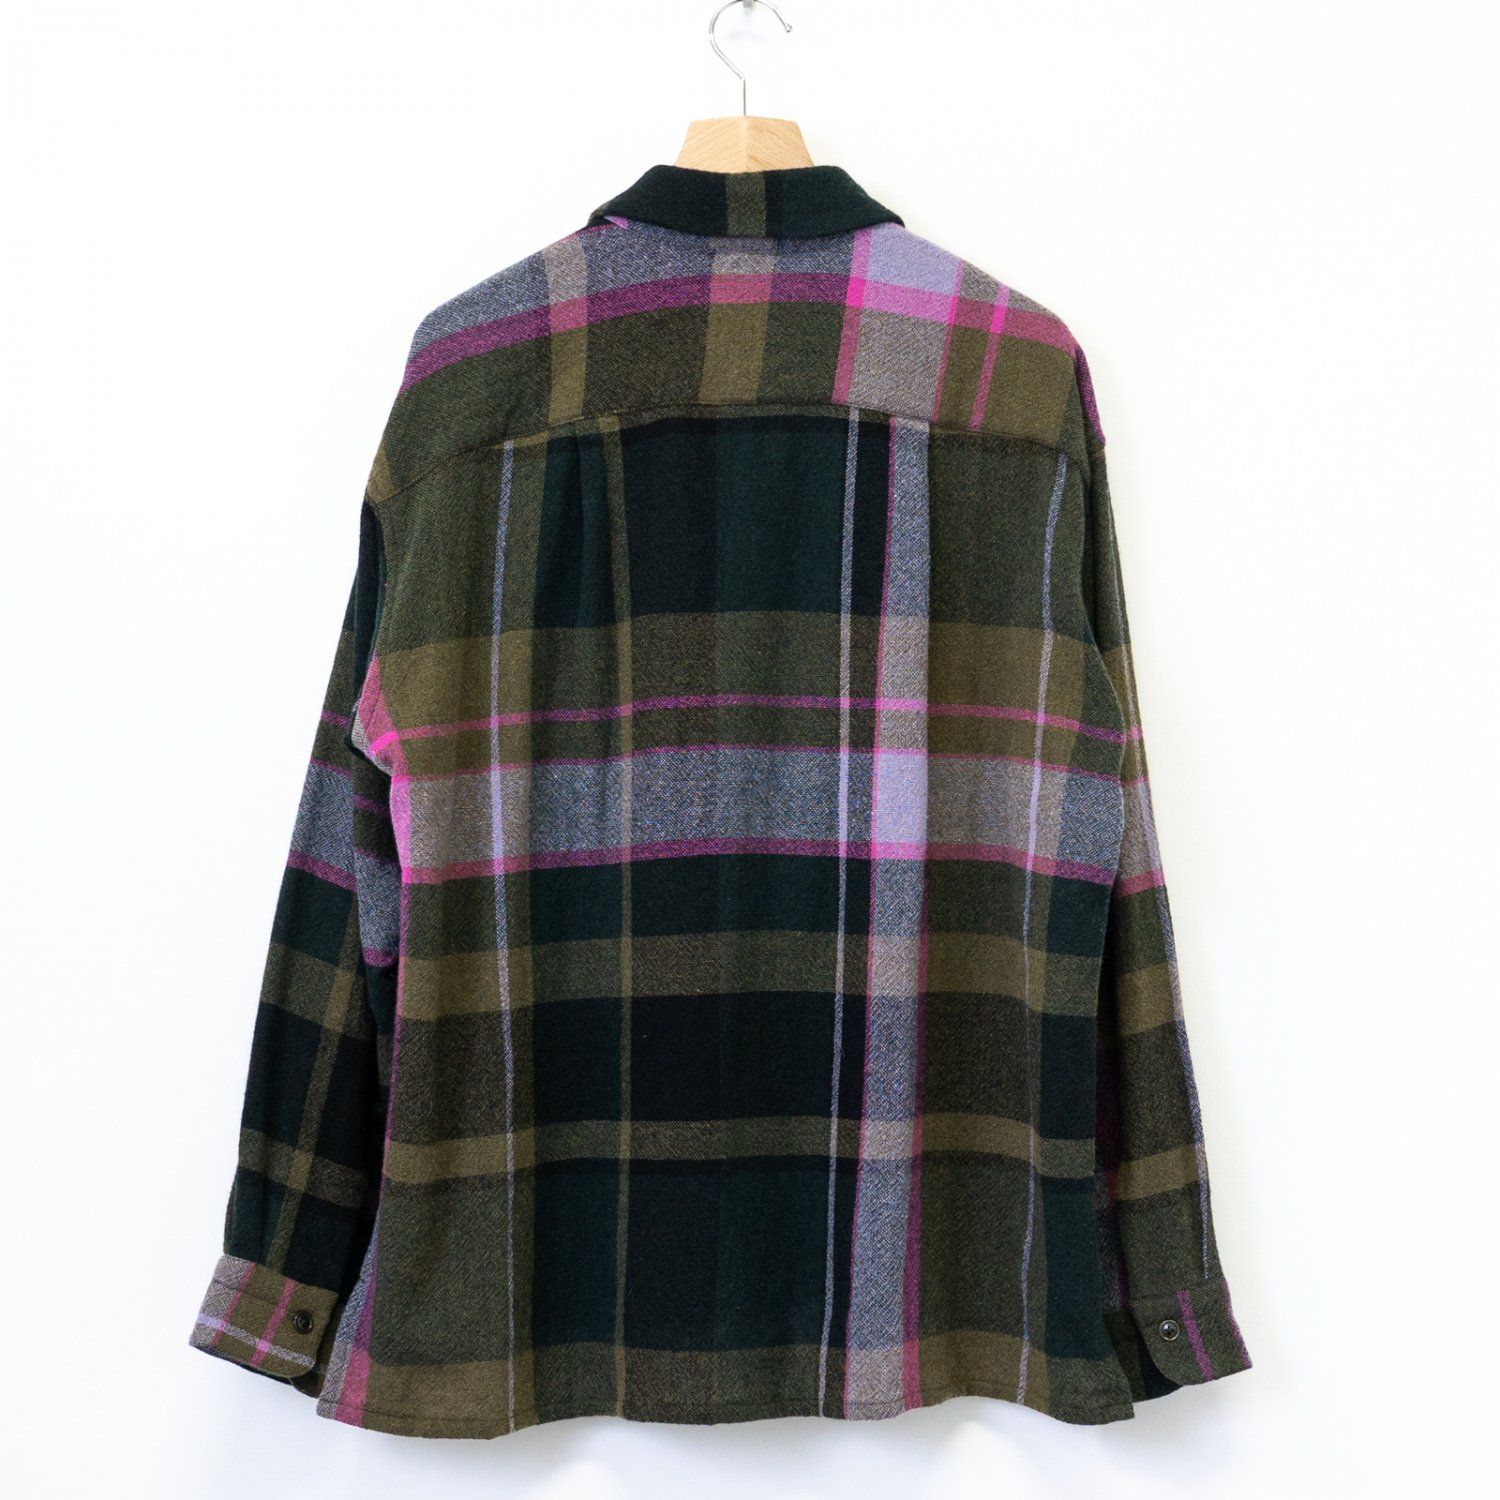 ts(s) * Large Pitch Color Plaid Wool Nylon Cloth Round Flap Pocket Baggy Shirt * Green